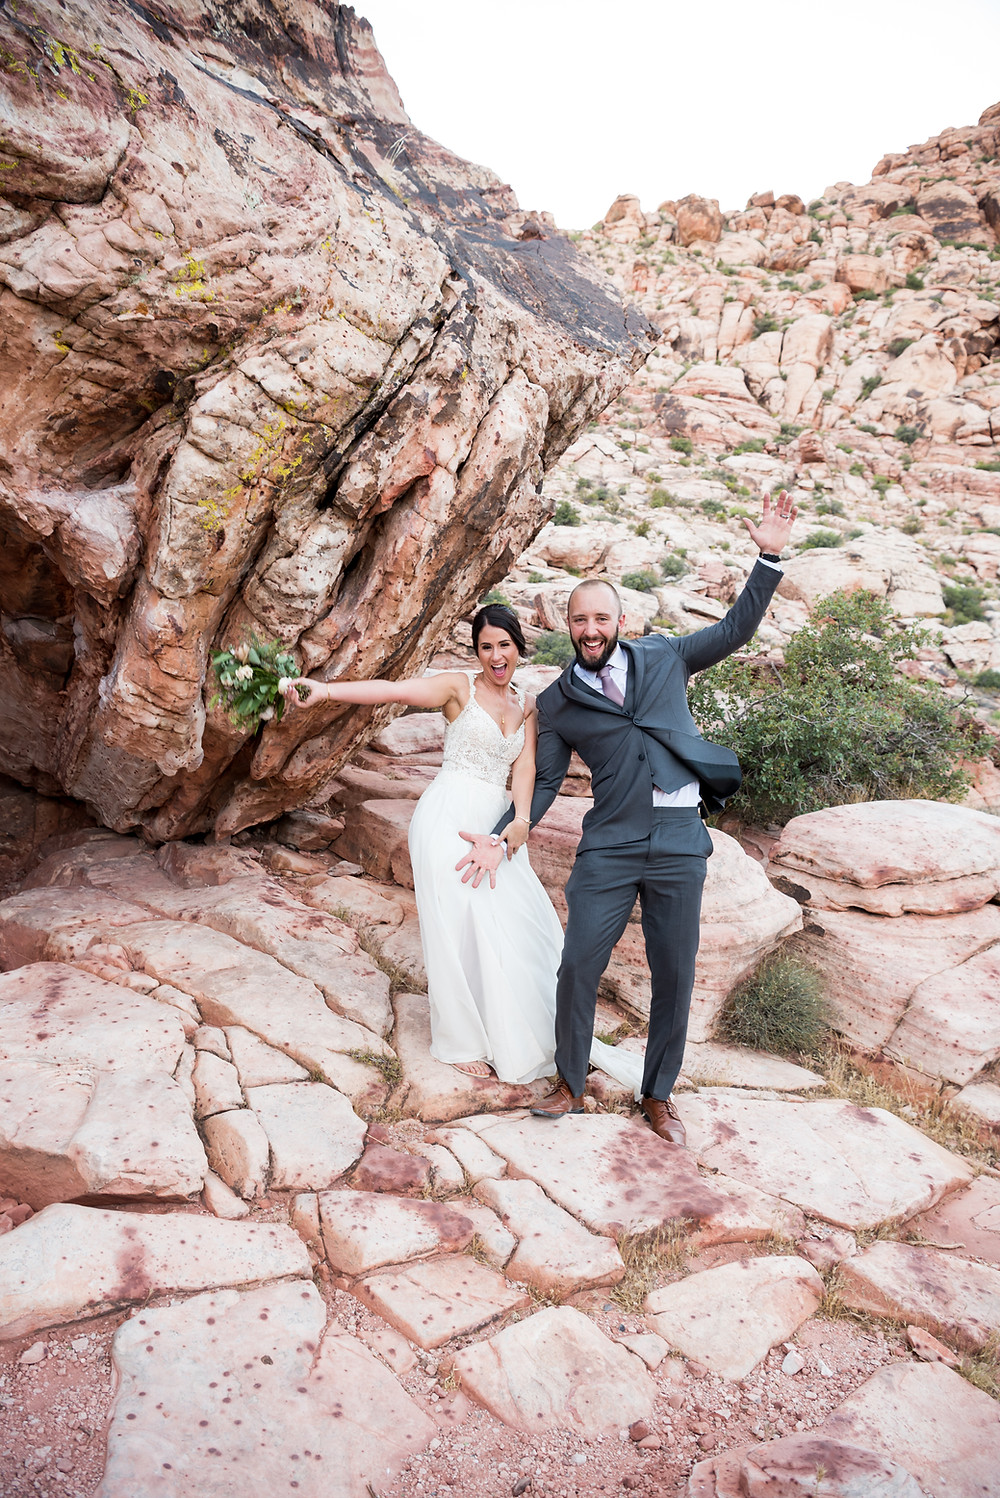 red rock wedding, las vegas wedding, las vegas elopement, vegas wedding, red rock wedding, red rock elopement, vegas wedding ceremony, bridal portraits, vegas photography, las vegas wedding photographer, vegas wedding photographer, vegas elopement photographer, vegas bride, vegas wedding ideas, vegas wedding inspiration